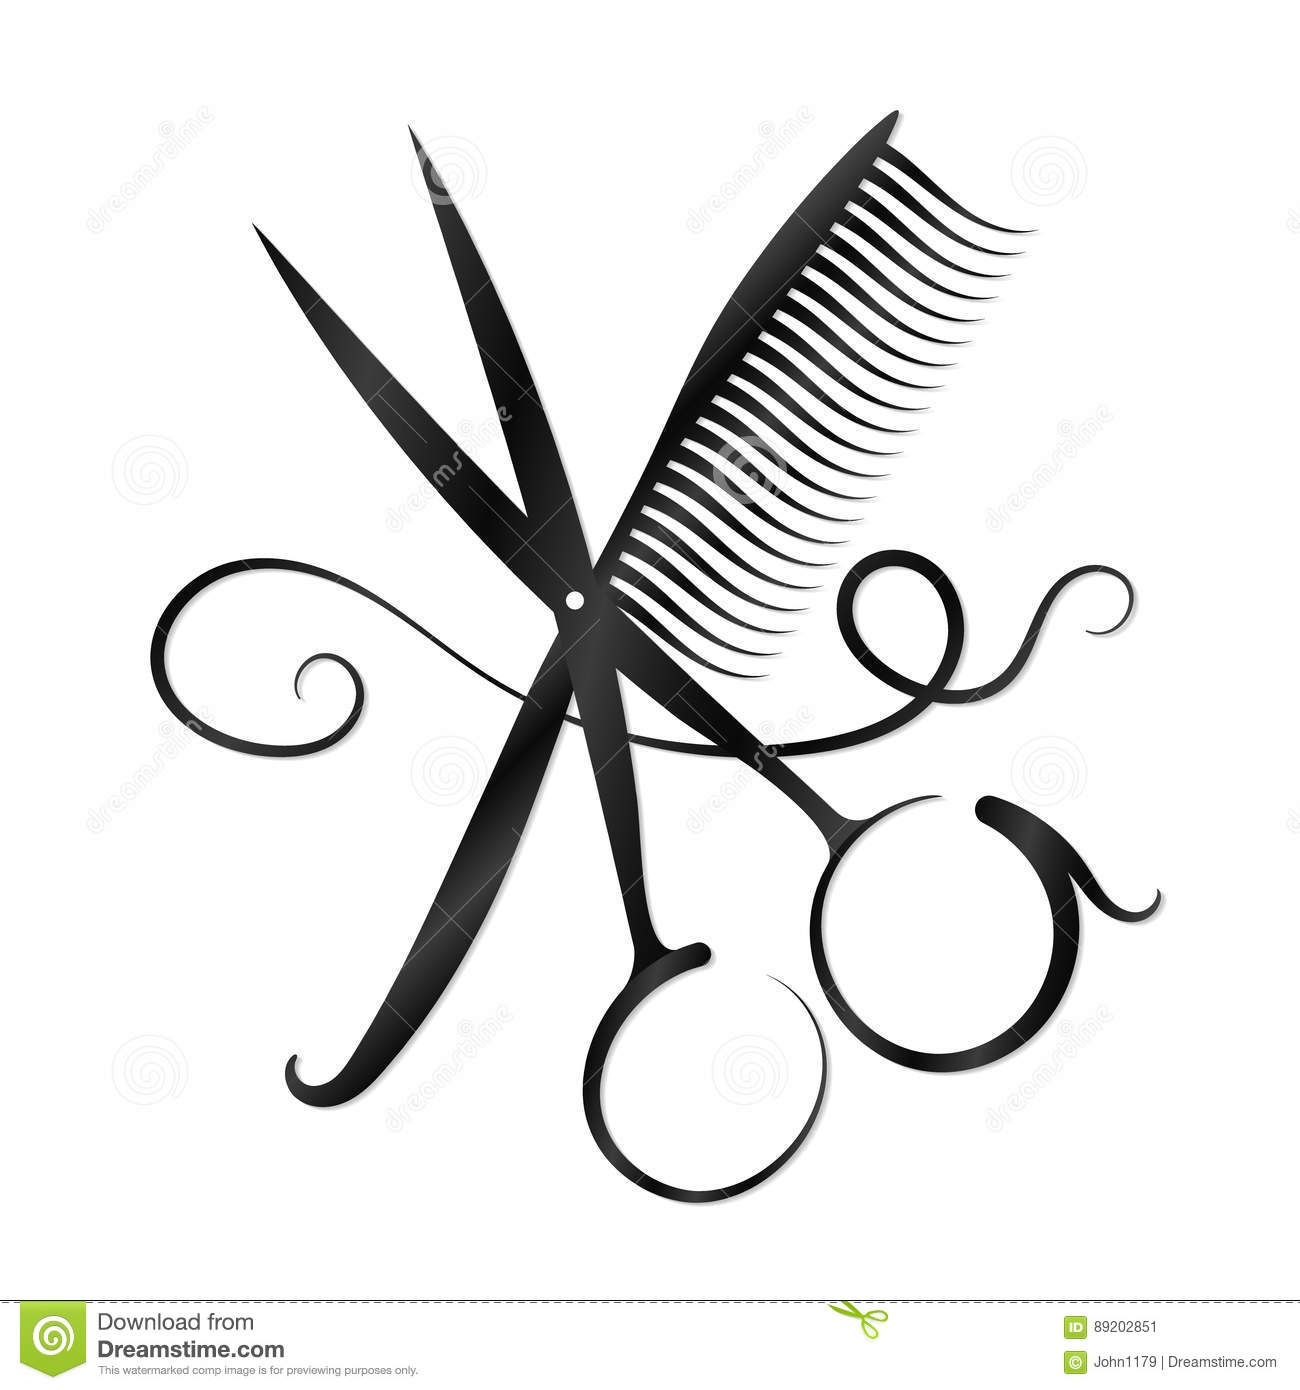 Hairdressing clipart pictures graphic black and white download Collection of 14 free Comb clipart hairdressing scissors bill ... graphic black and white download